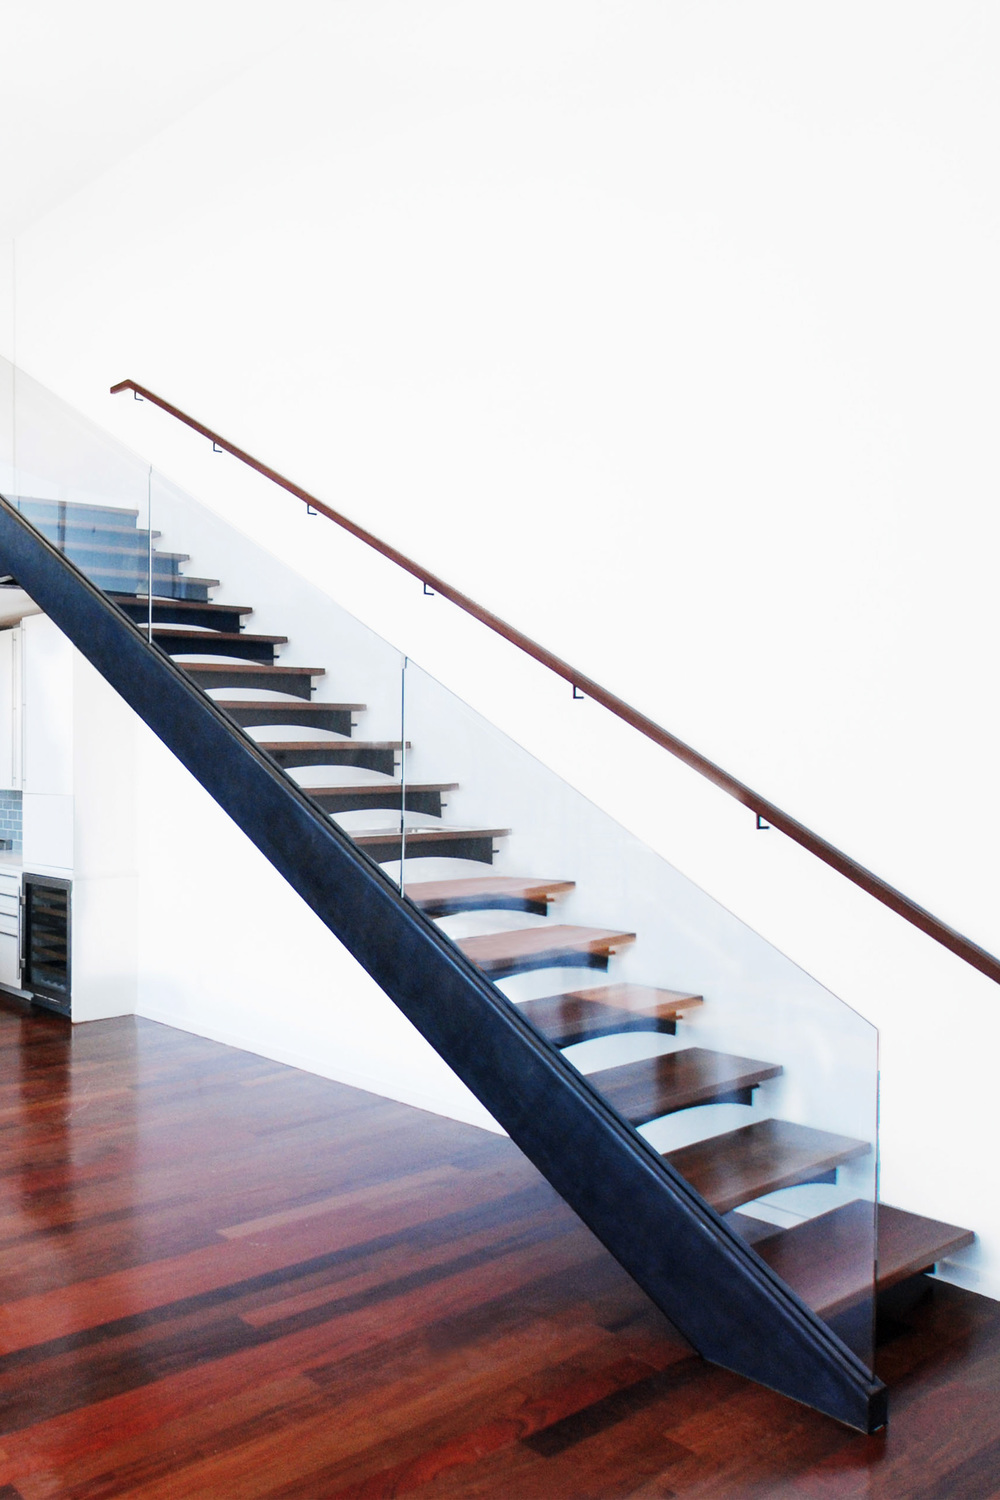 Blackened Steel Staircase with Mezzanine